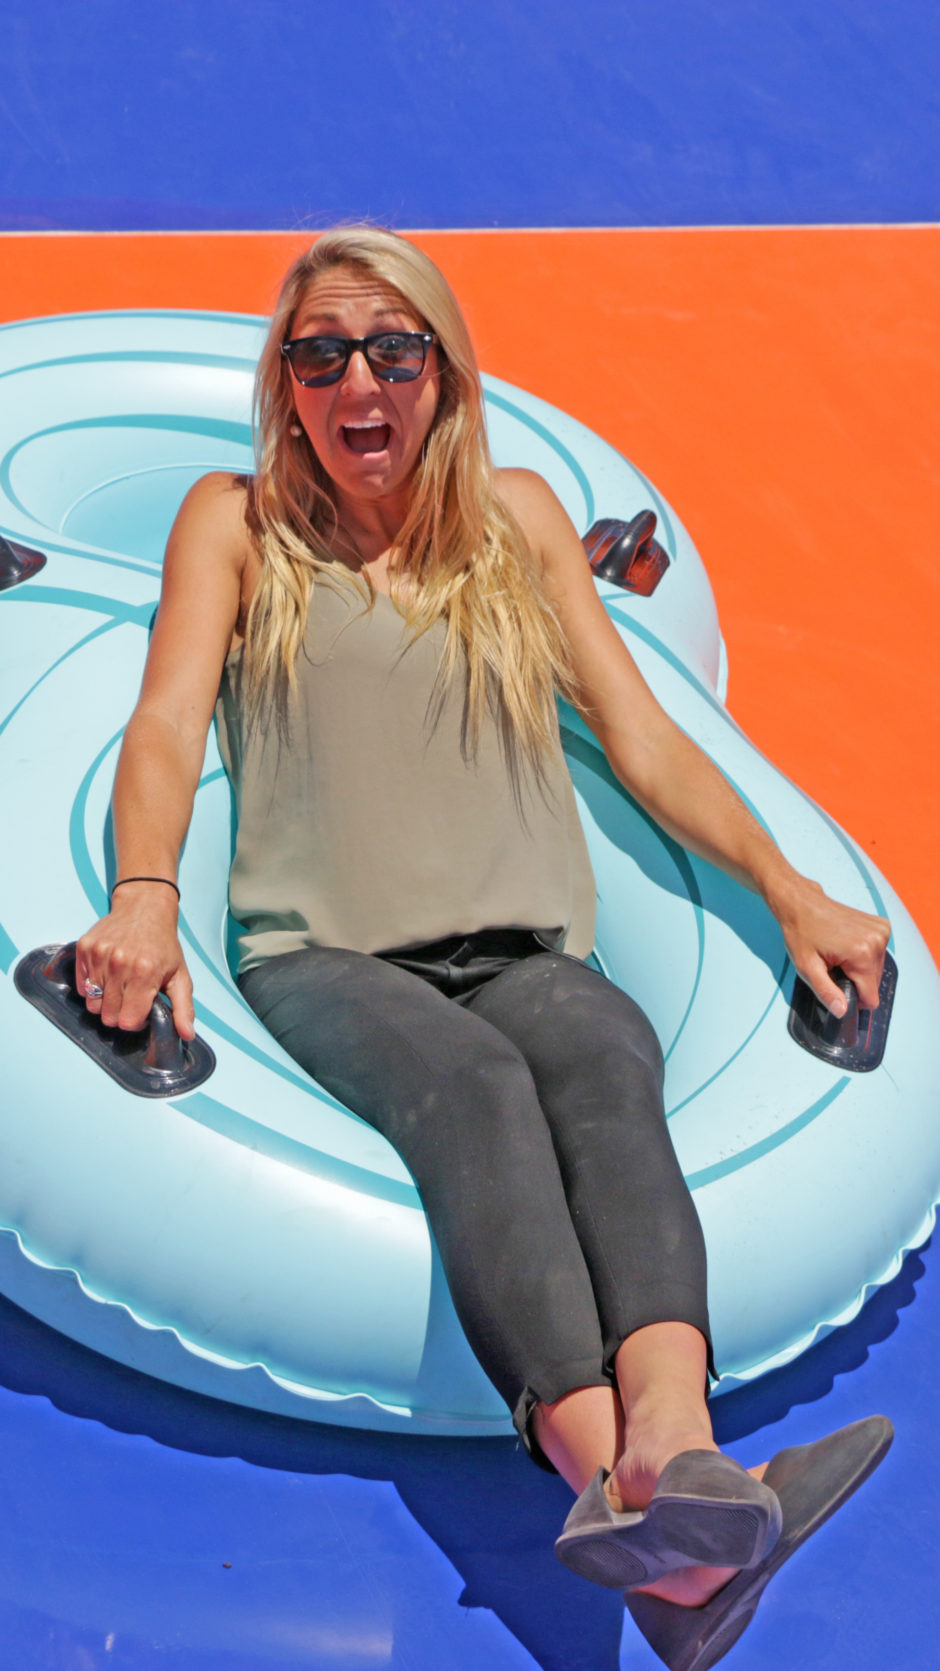 Waterslide designer Emily Colombo sits on a raft on a waterslide.